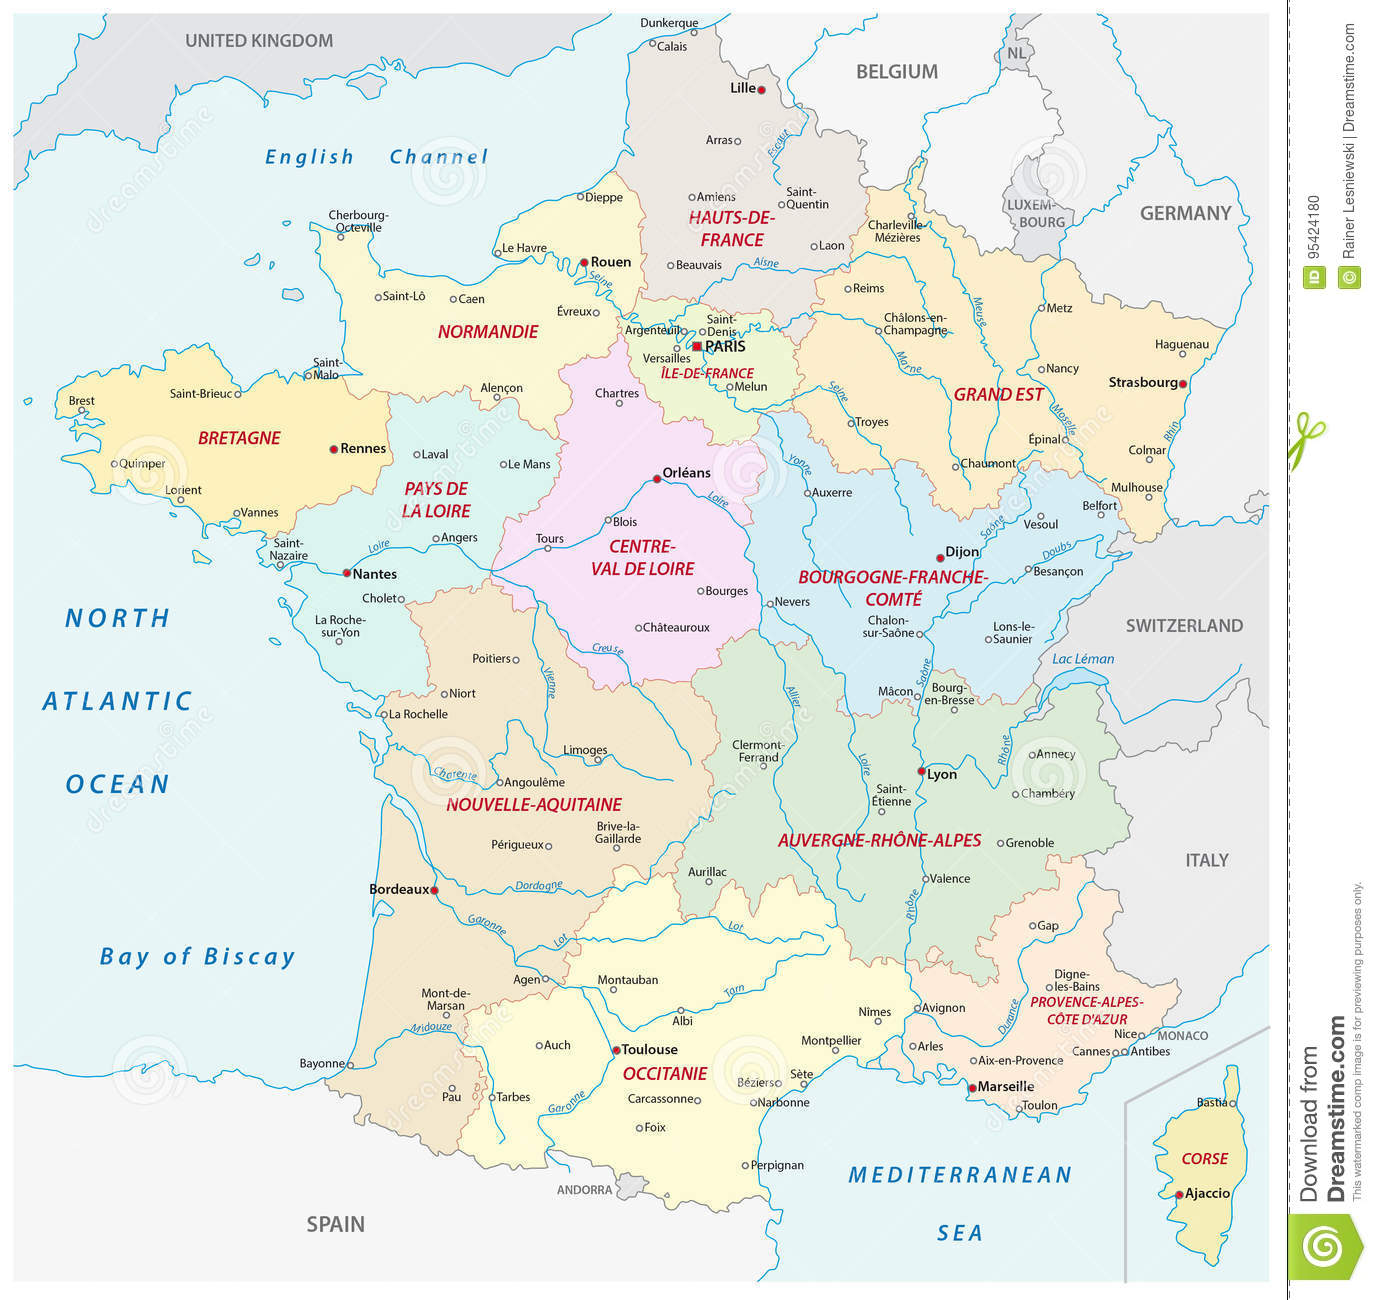 Cities Of France Map.France Map With The New Regions And The Most Important Cities And